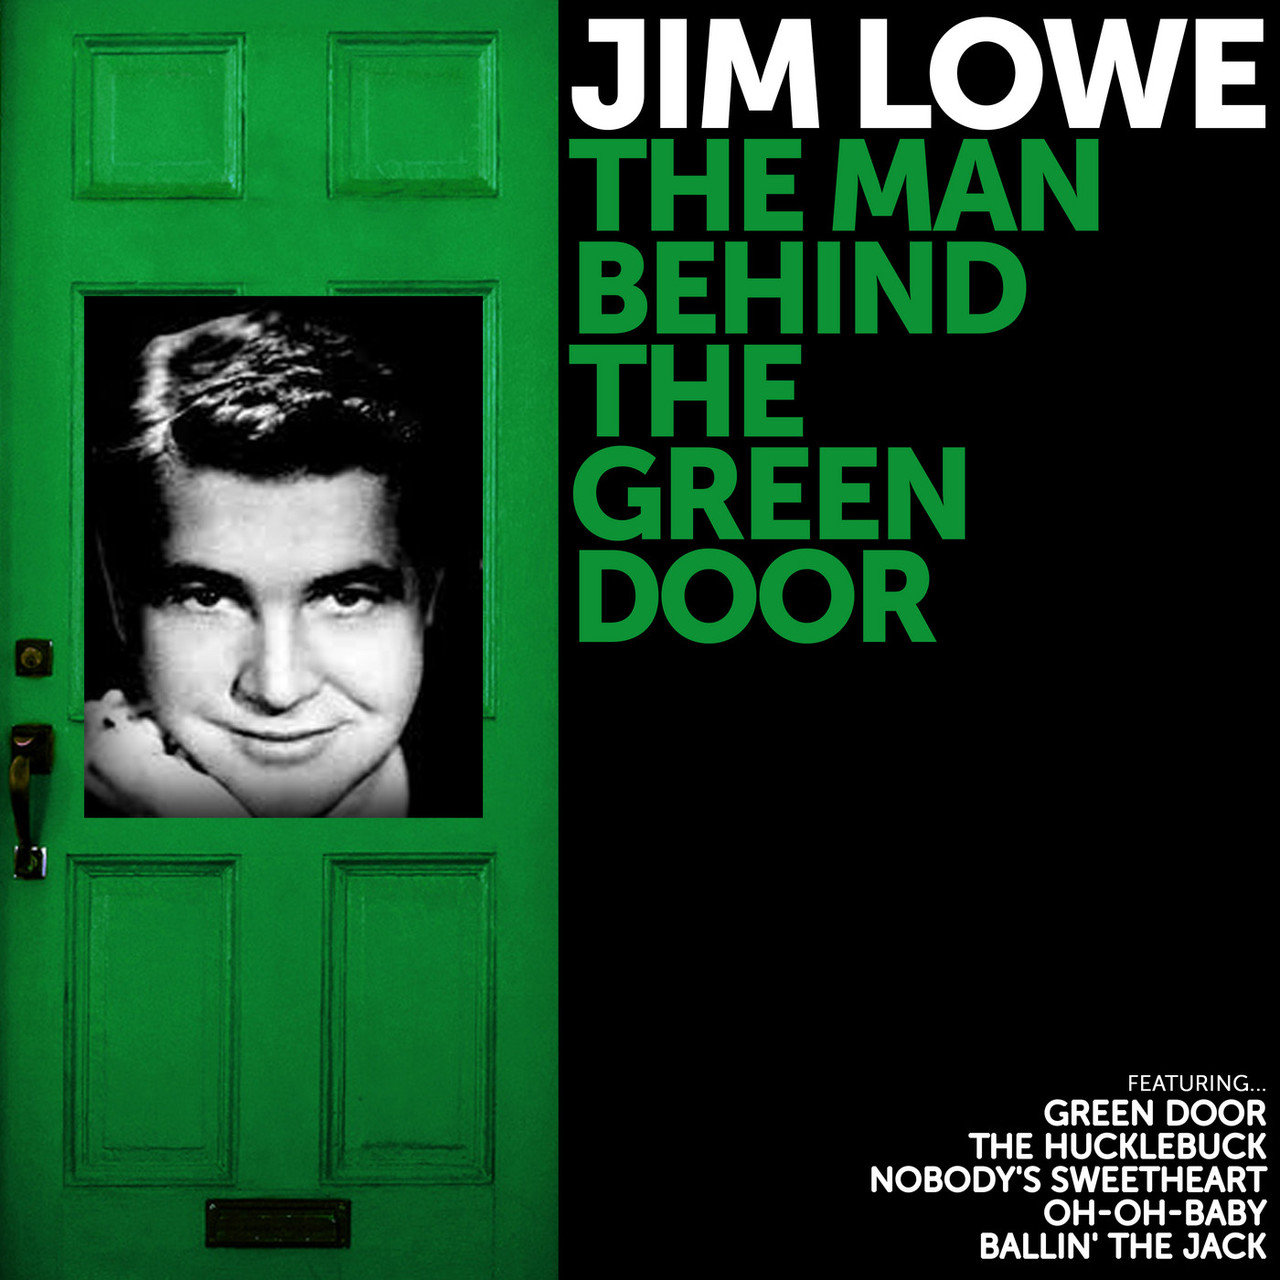 Behind The Green Door Pics jim lowe: the man behind the green doorjim lowe on tidal